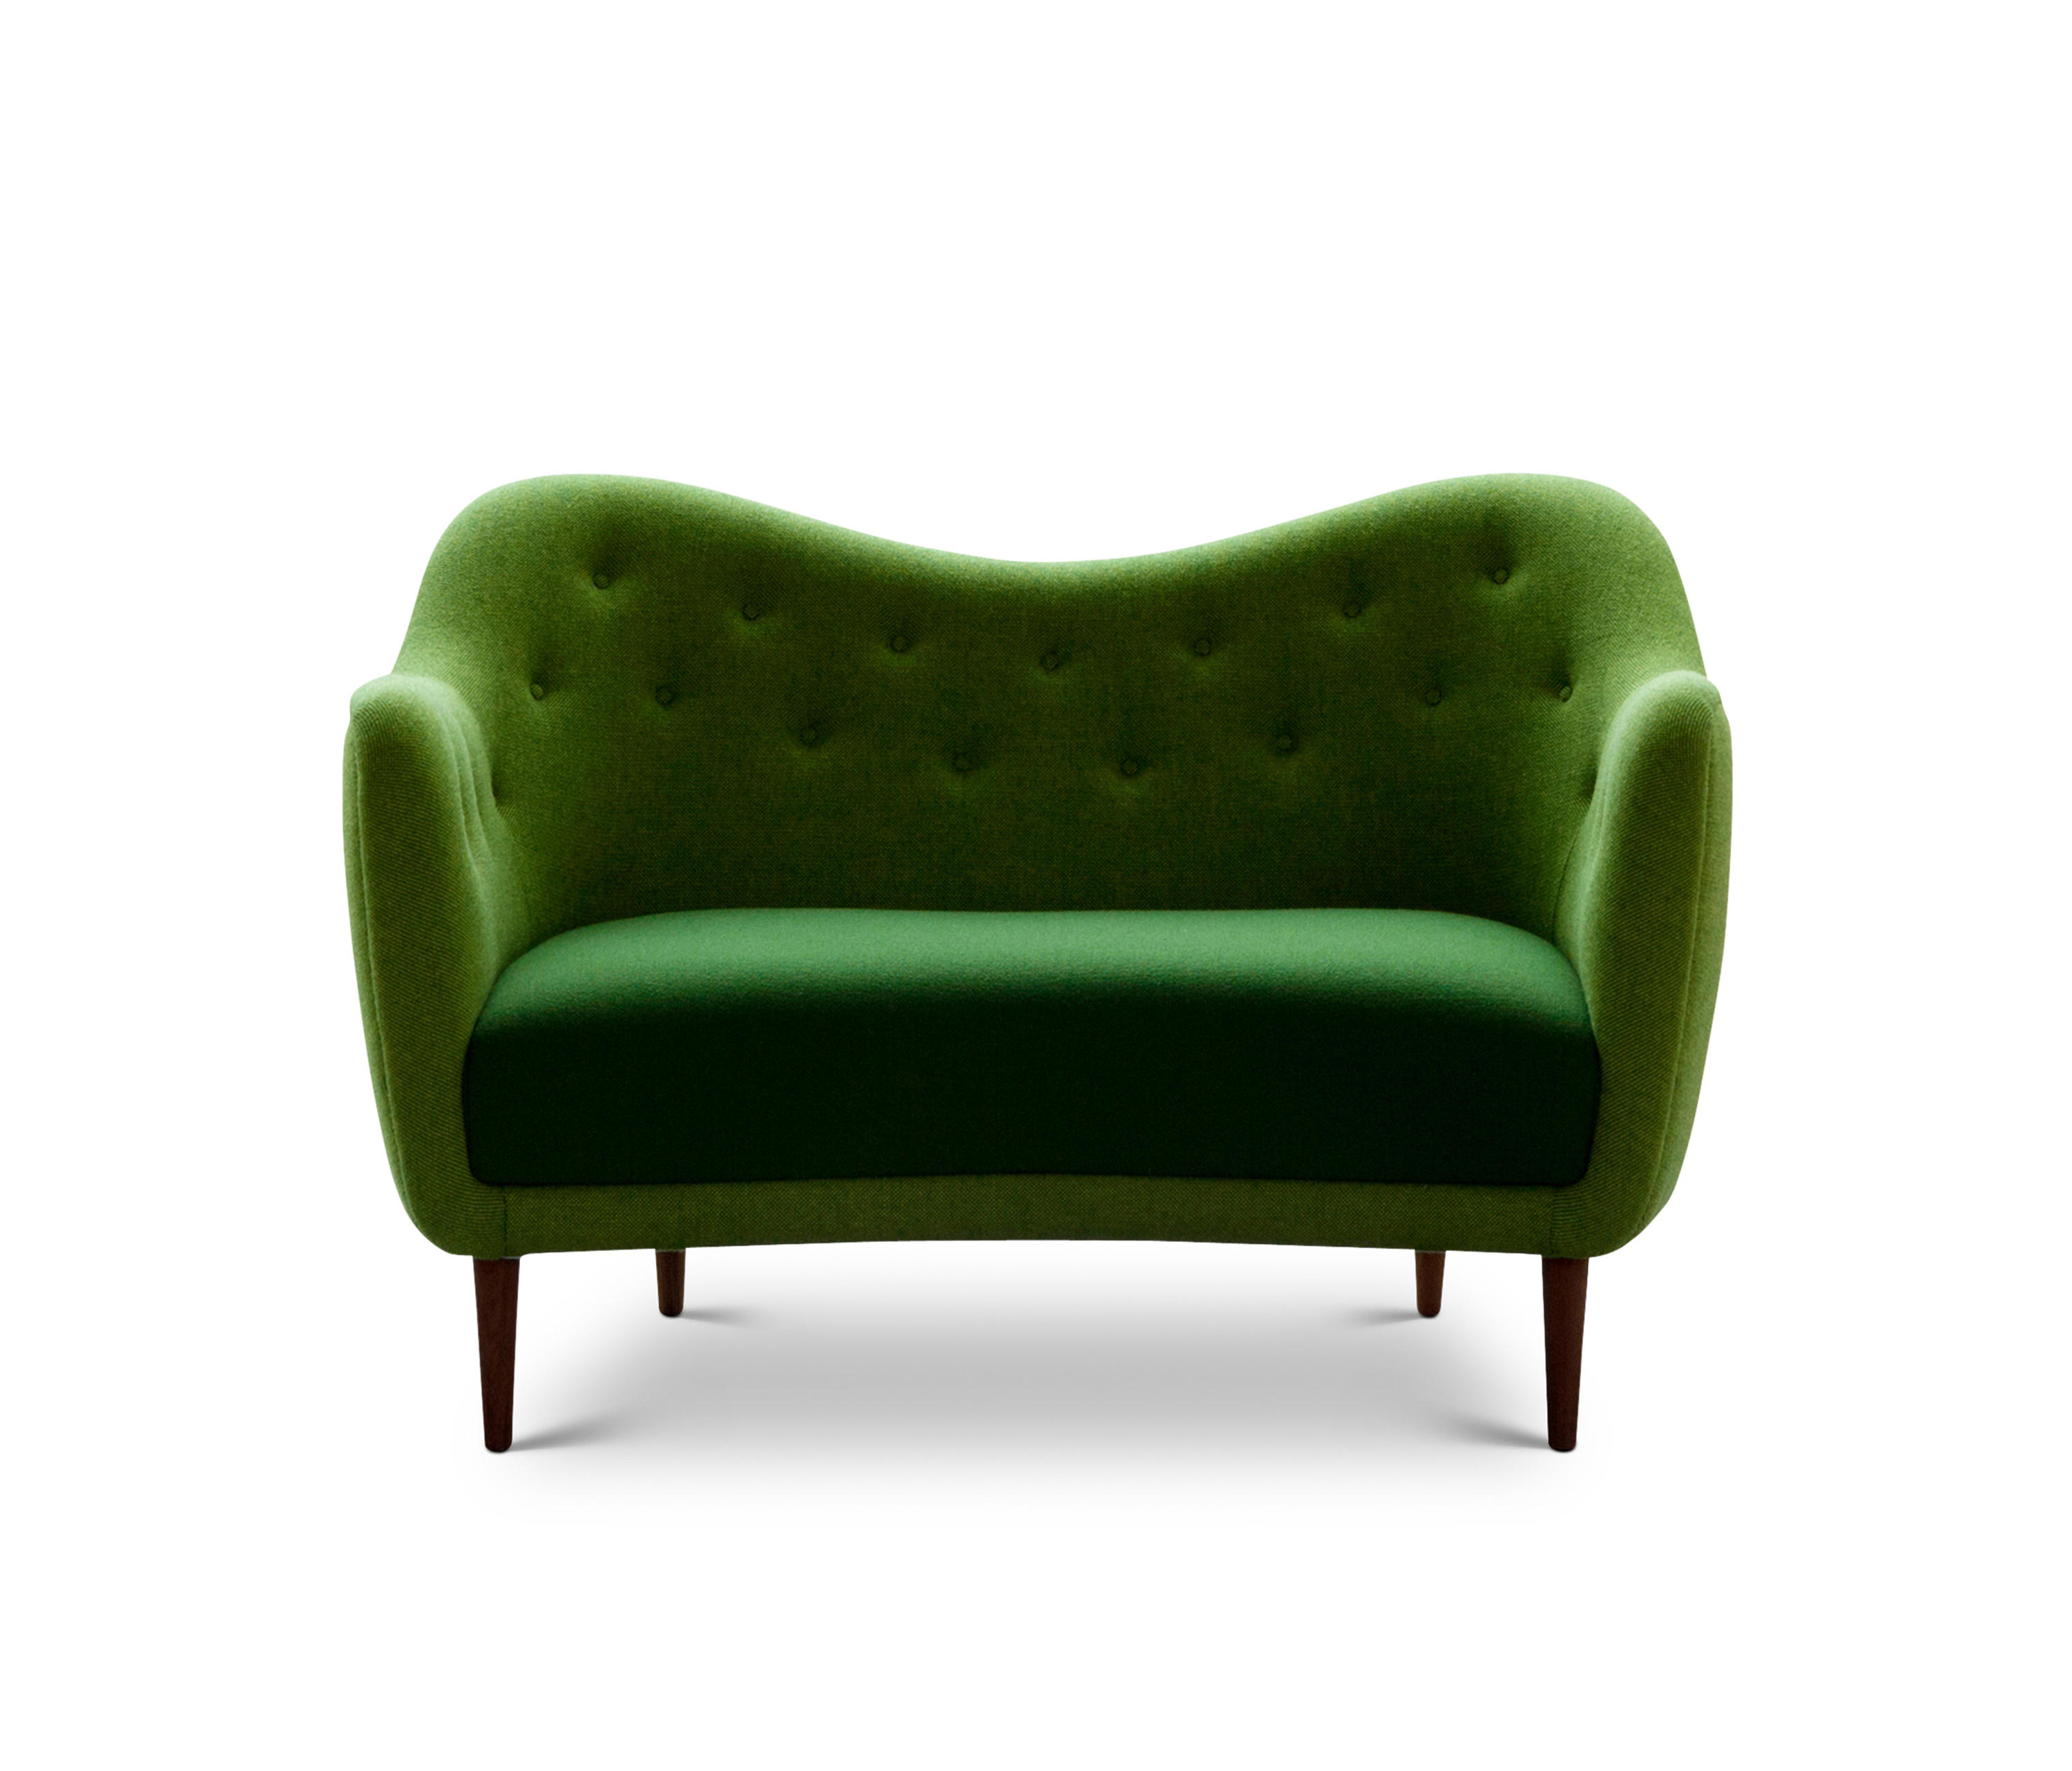 Charmant 46 Sofa By House Of Finn Juhl   Onecollection | Sofas